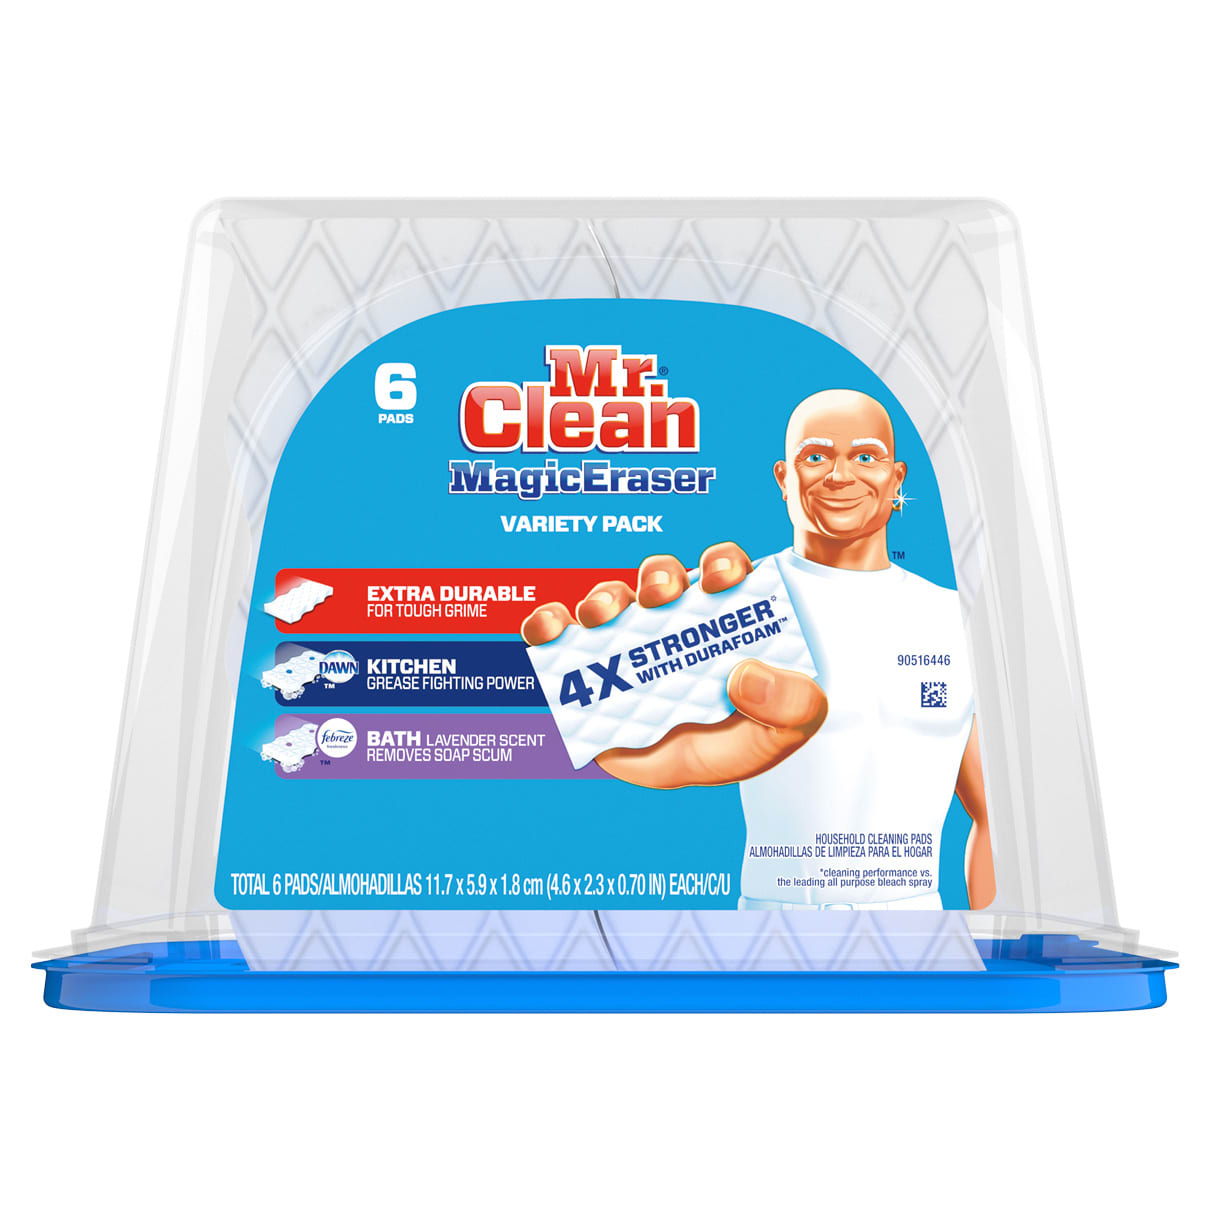 Mr Clean Magic Eraser Variety Pack